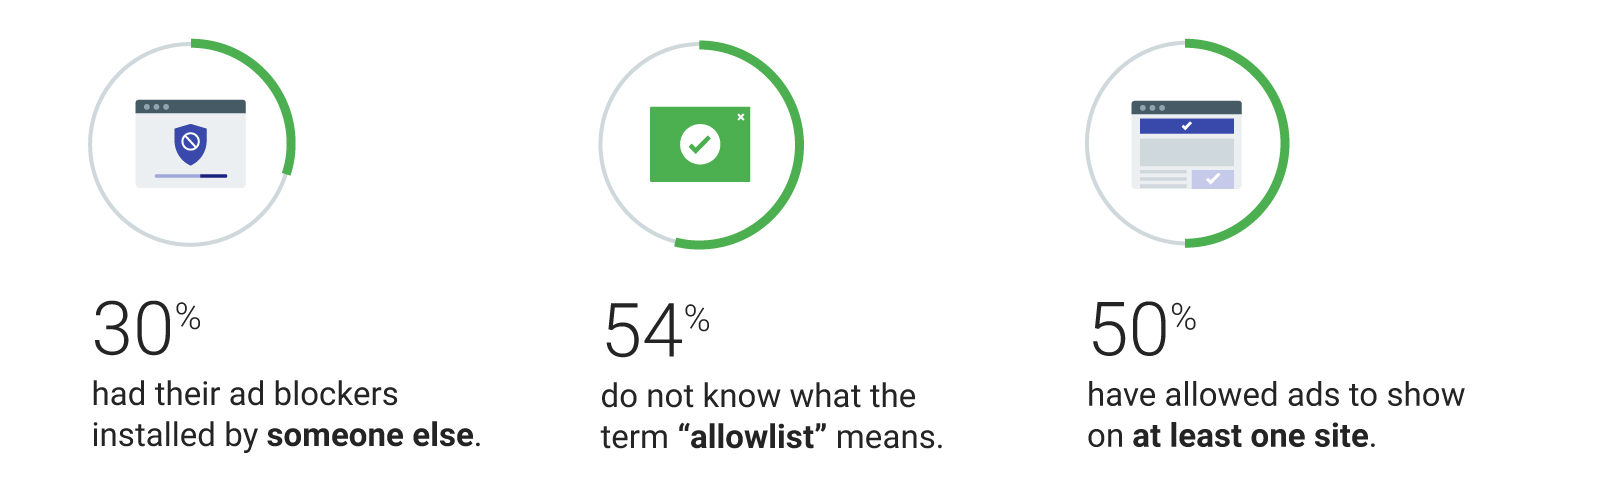 """30% had their ad blockers installed by someone else. 54% do not know what the term """"allowlist"""" means. 50% have allowed ads to show at least on one site."""